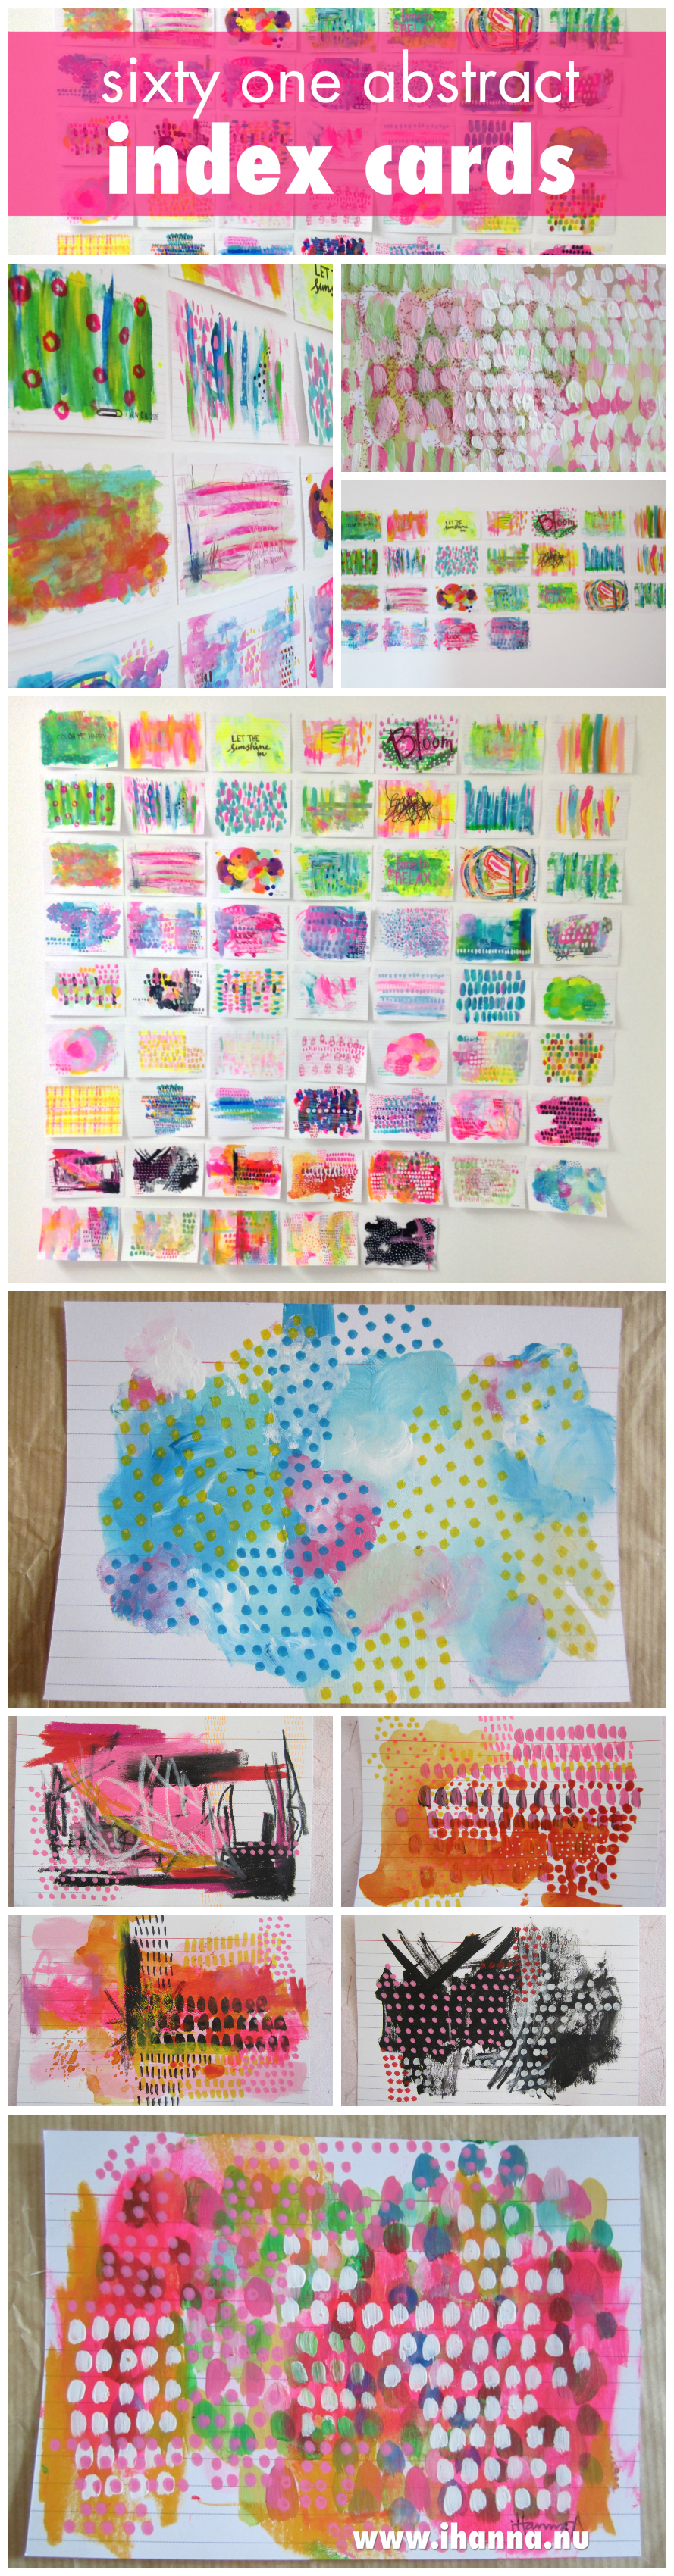 61 abstract painted index cards painted by iHanna #icad